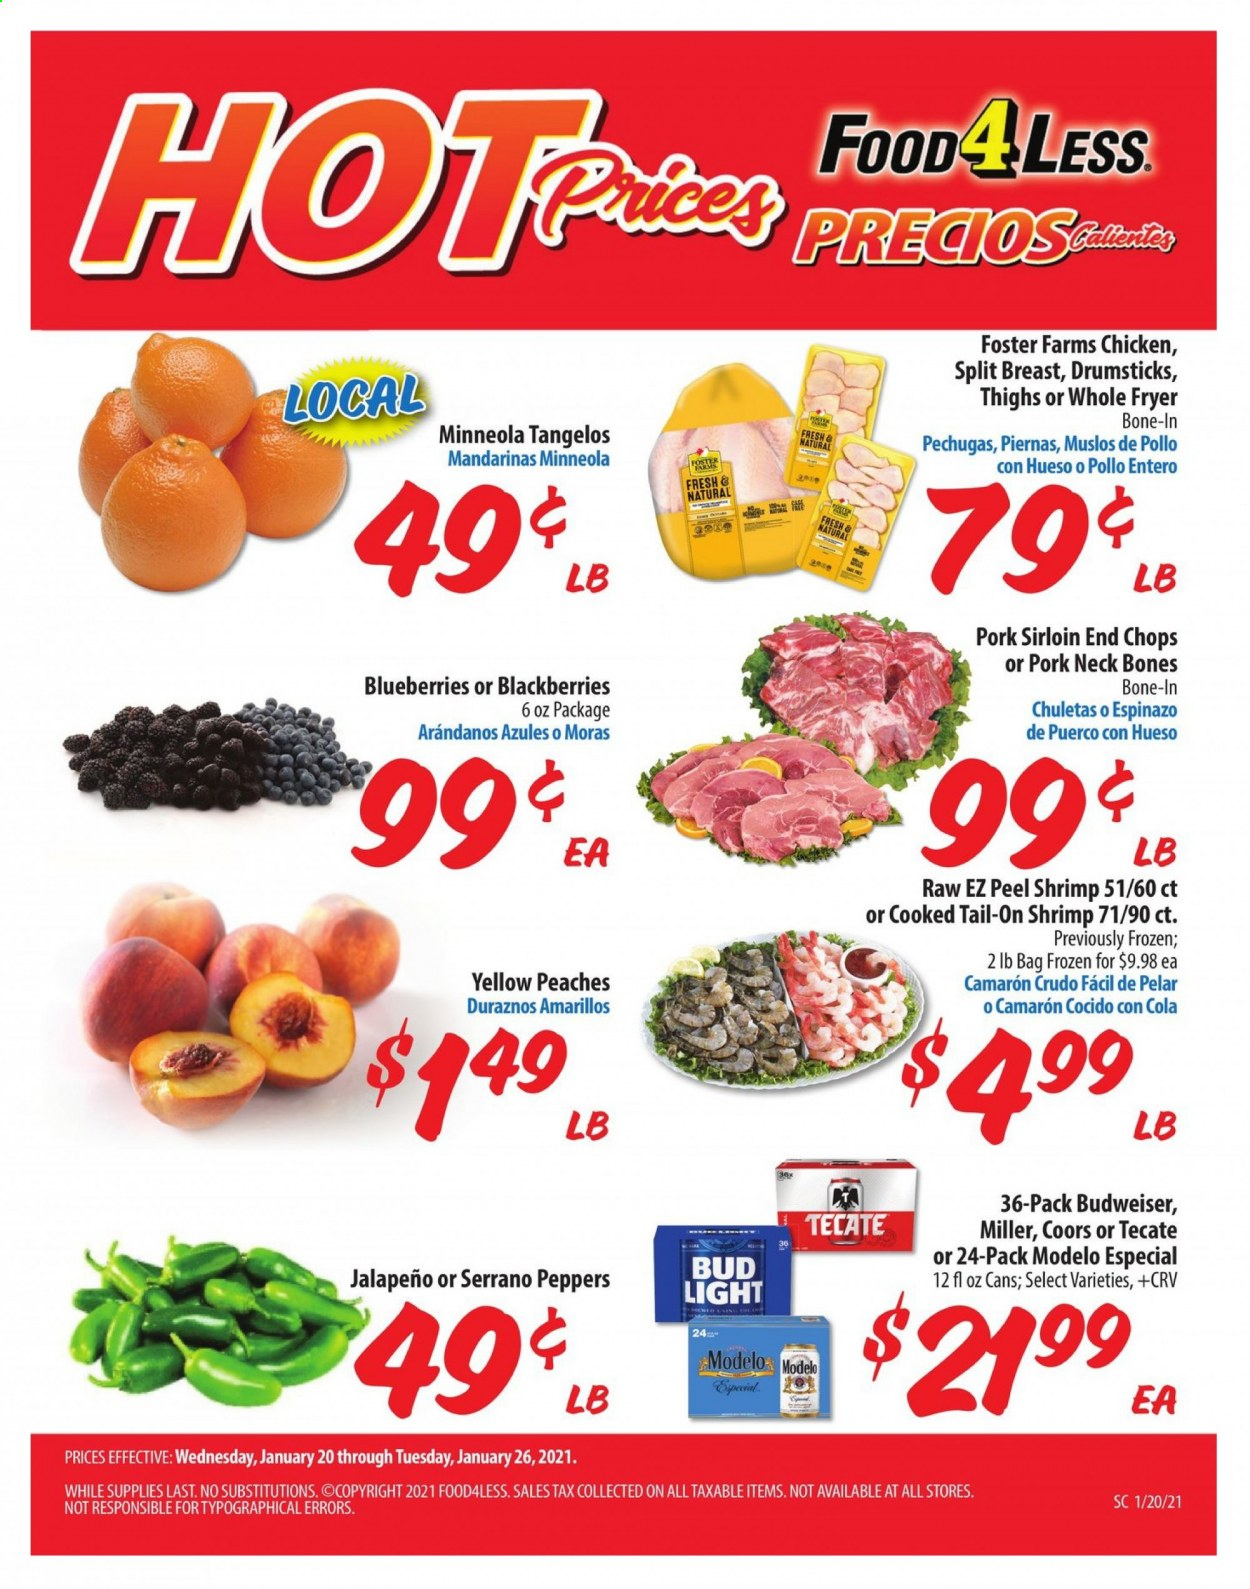 Food 4 Less Flyer - 01.20.2021 - 01.26.2021 - Sales products - Budweiser, Bud Light, Coors, peppers, blackberries, blueberries, tangelos, shrimps, jalapeño, chicken, pork meat, Frozen. Page 1.